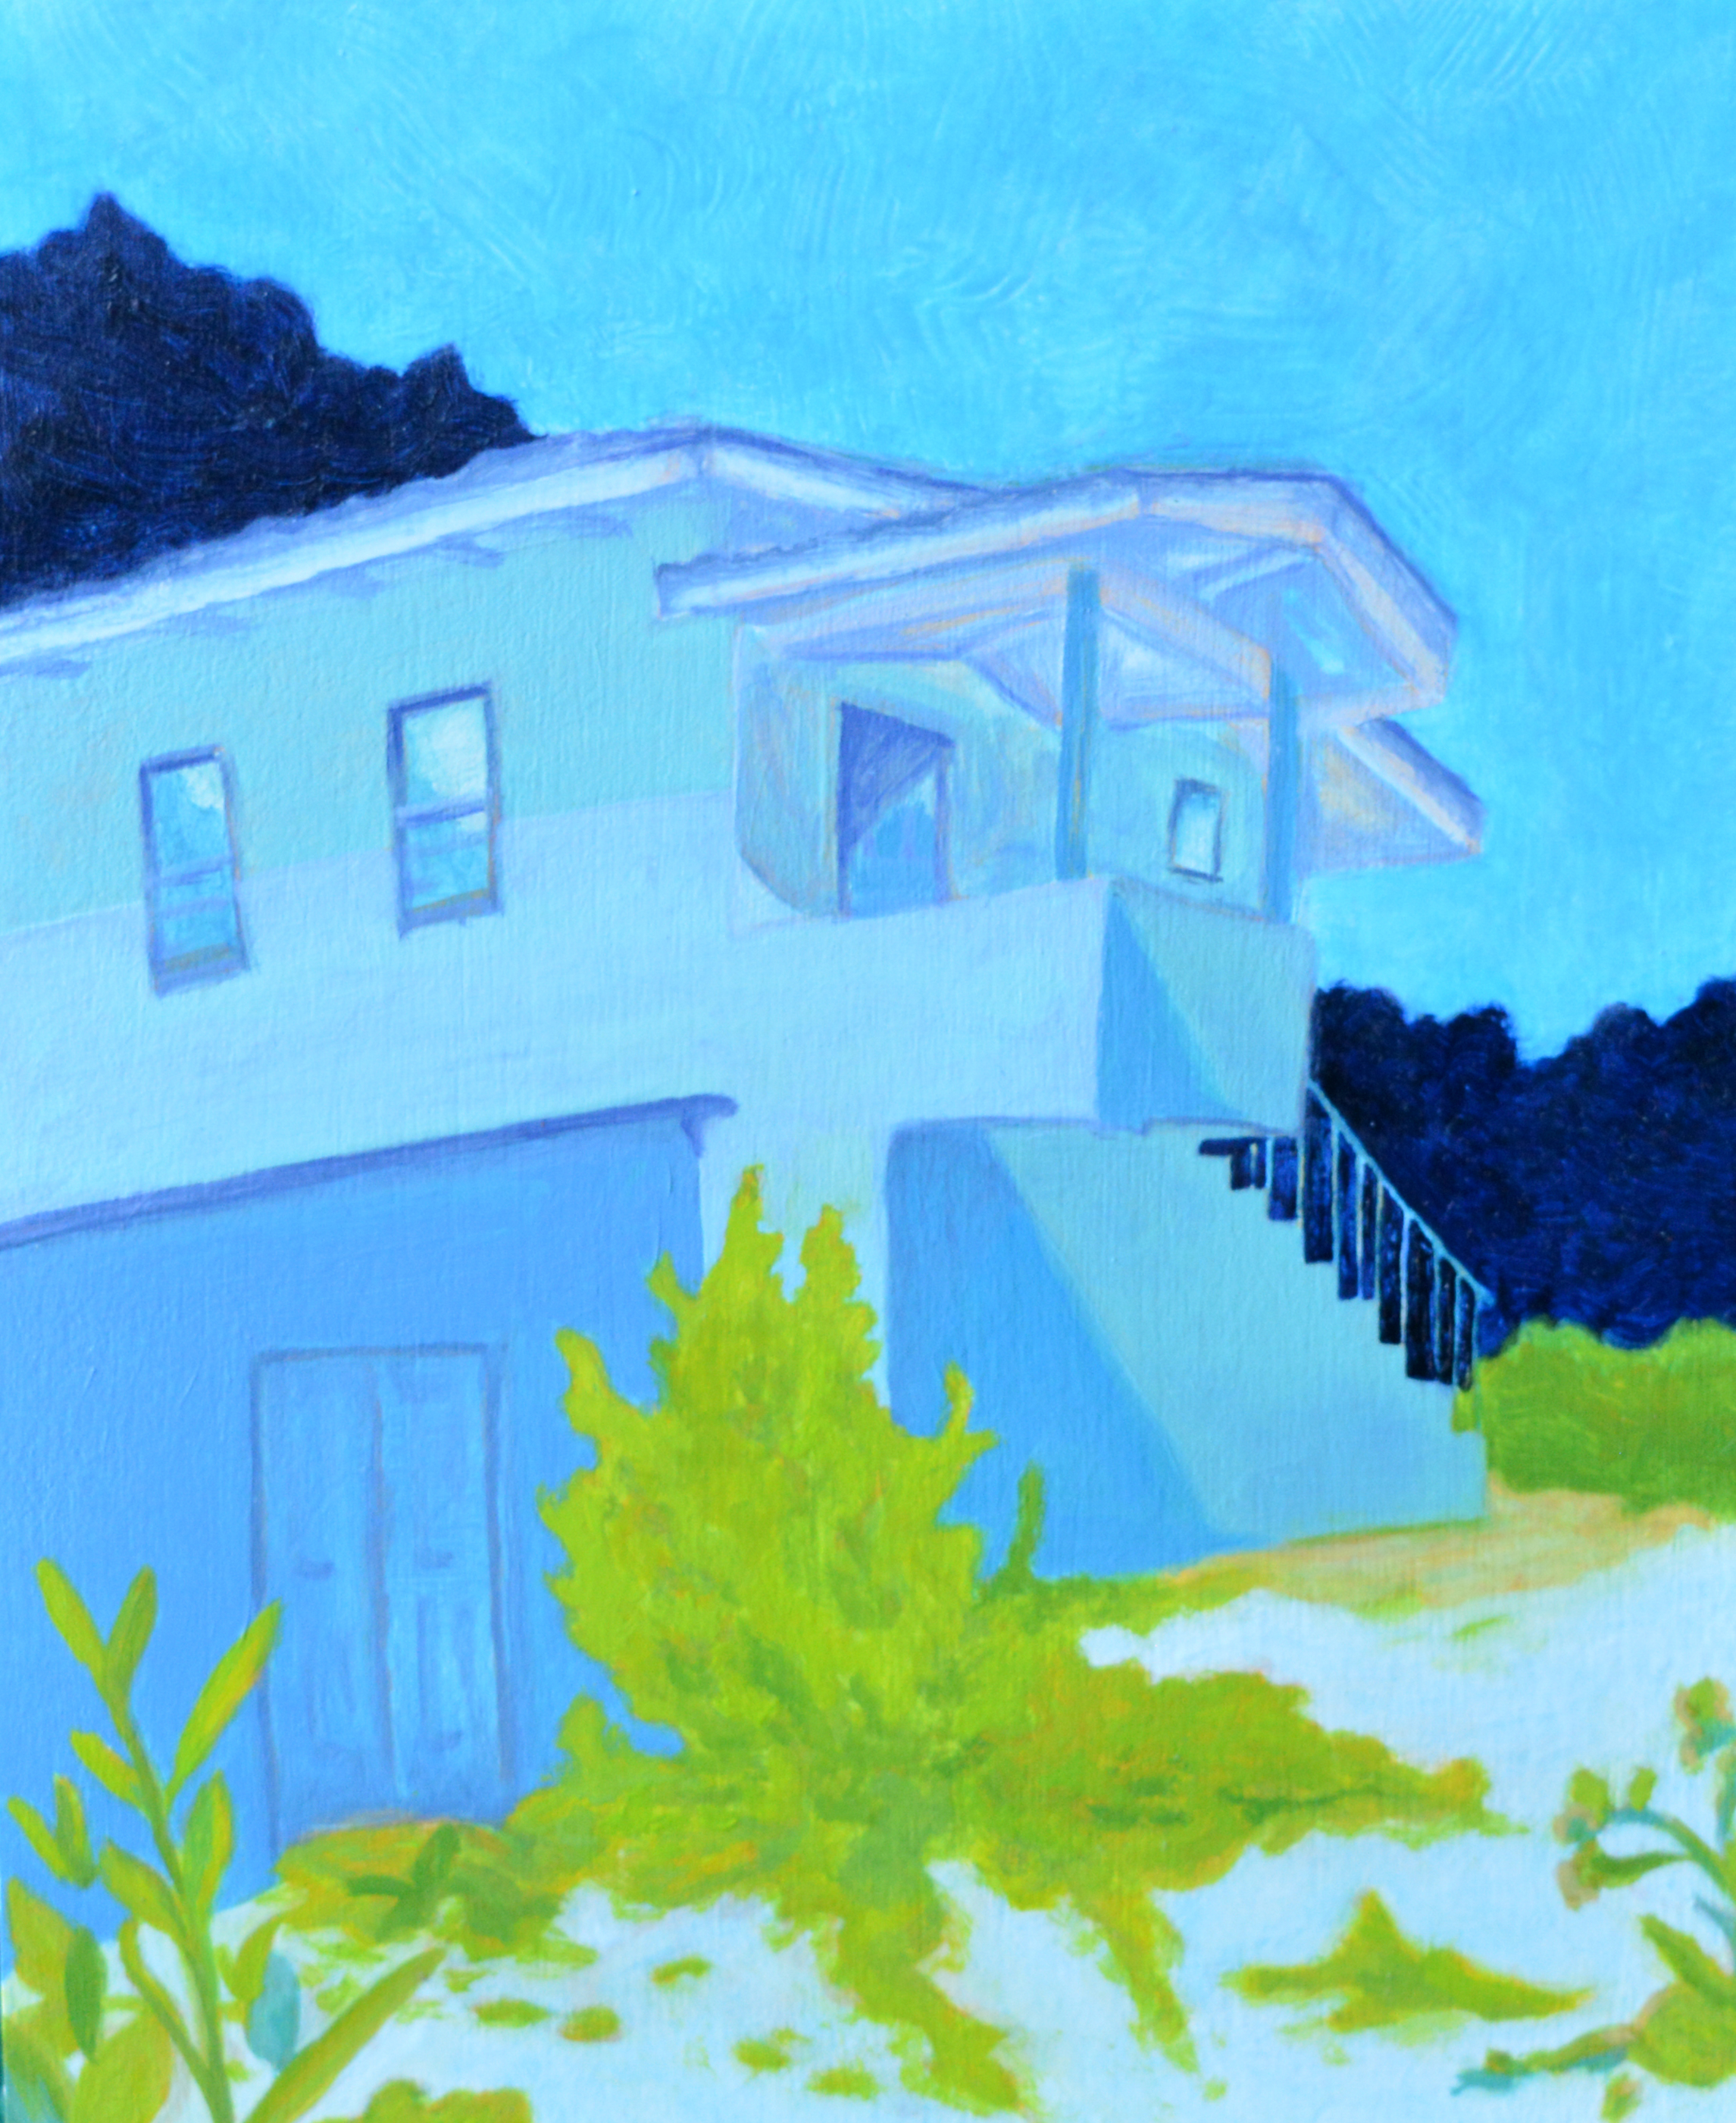 Blue House  oil and acrylic on wood panel, 10in x 8in, 2017